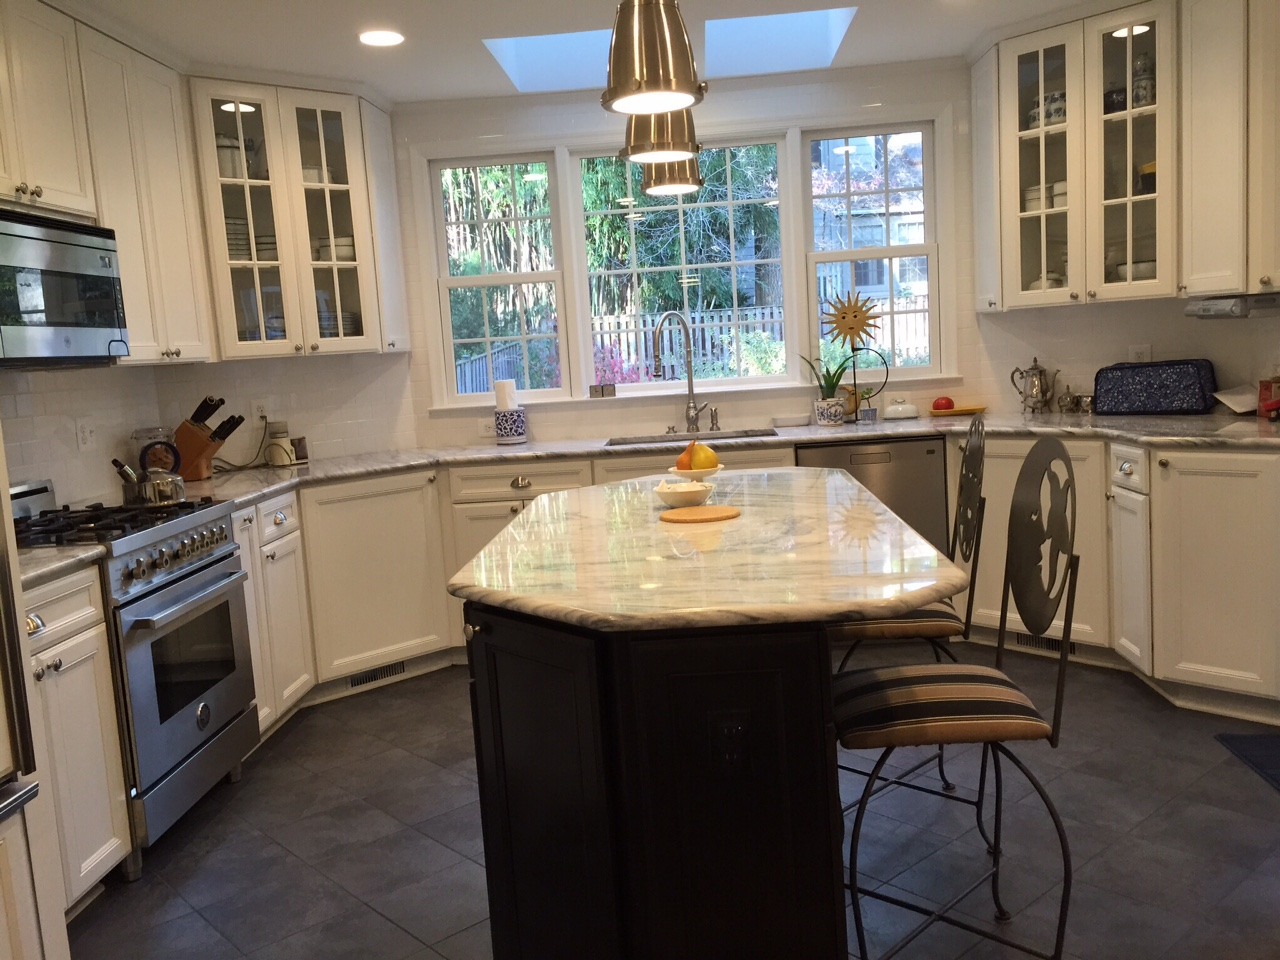 kitchens kitchen remodeling rockville md We provide kitchen remodeling and renovations throughout Maryland DC and Virginia including the following communities Rockville Potomac Bethesda